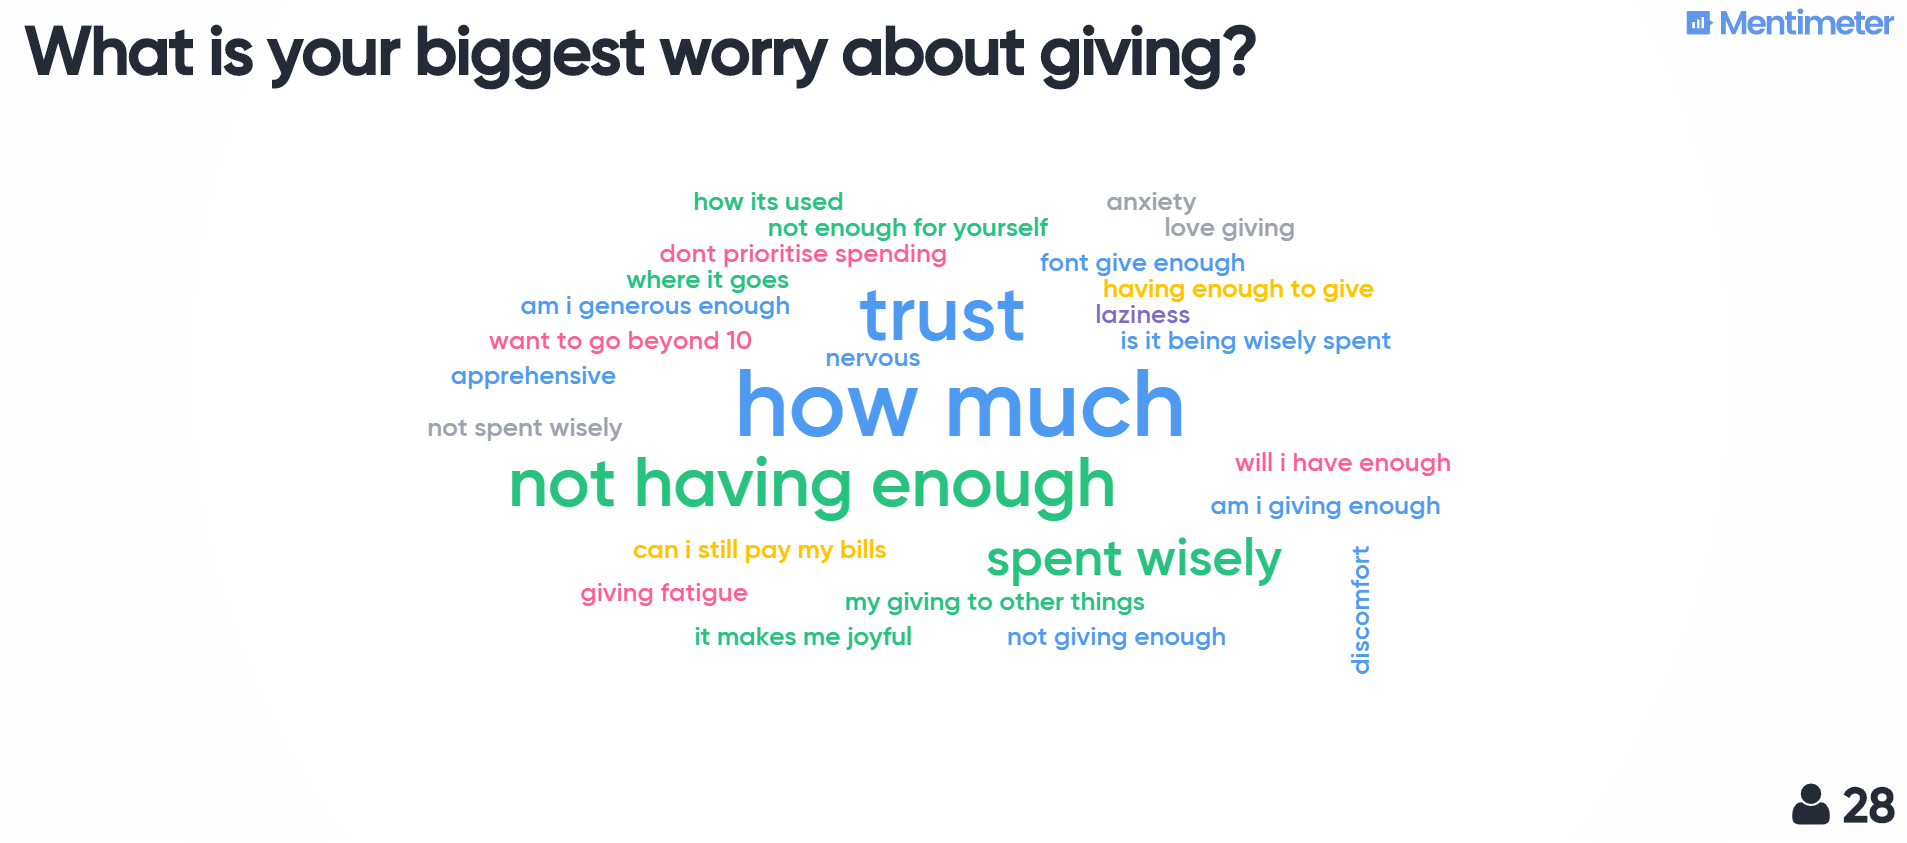 2019-09-15 - Biggest worry about giving.png